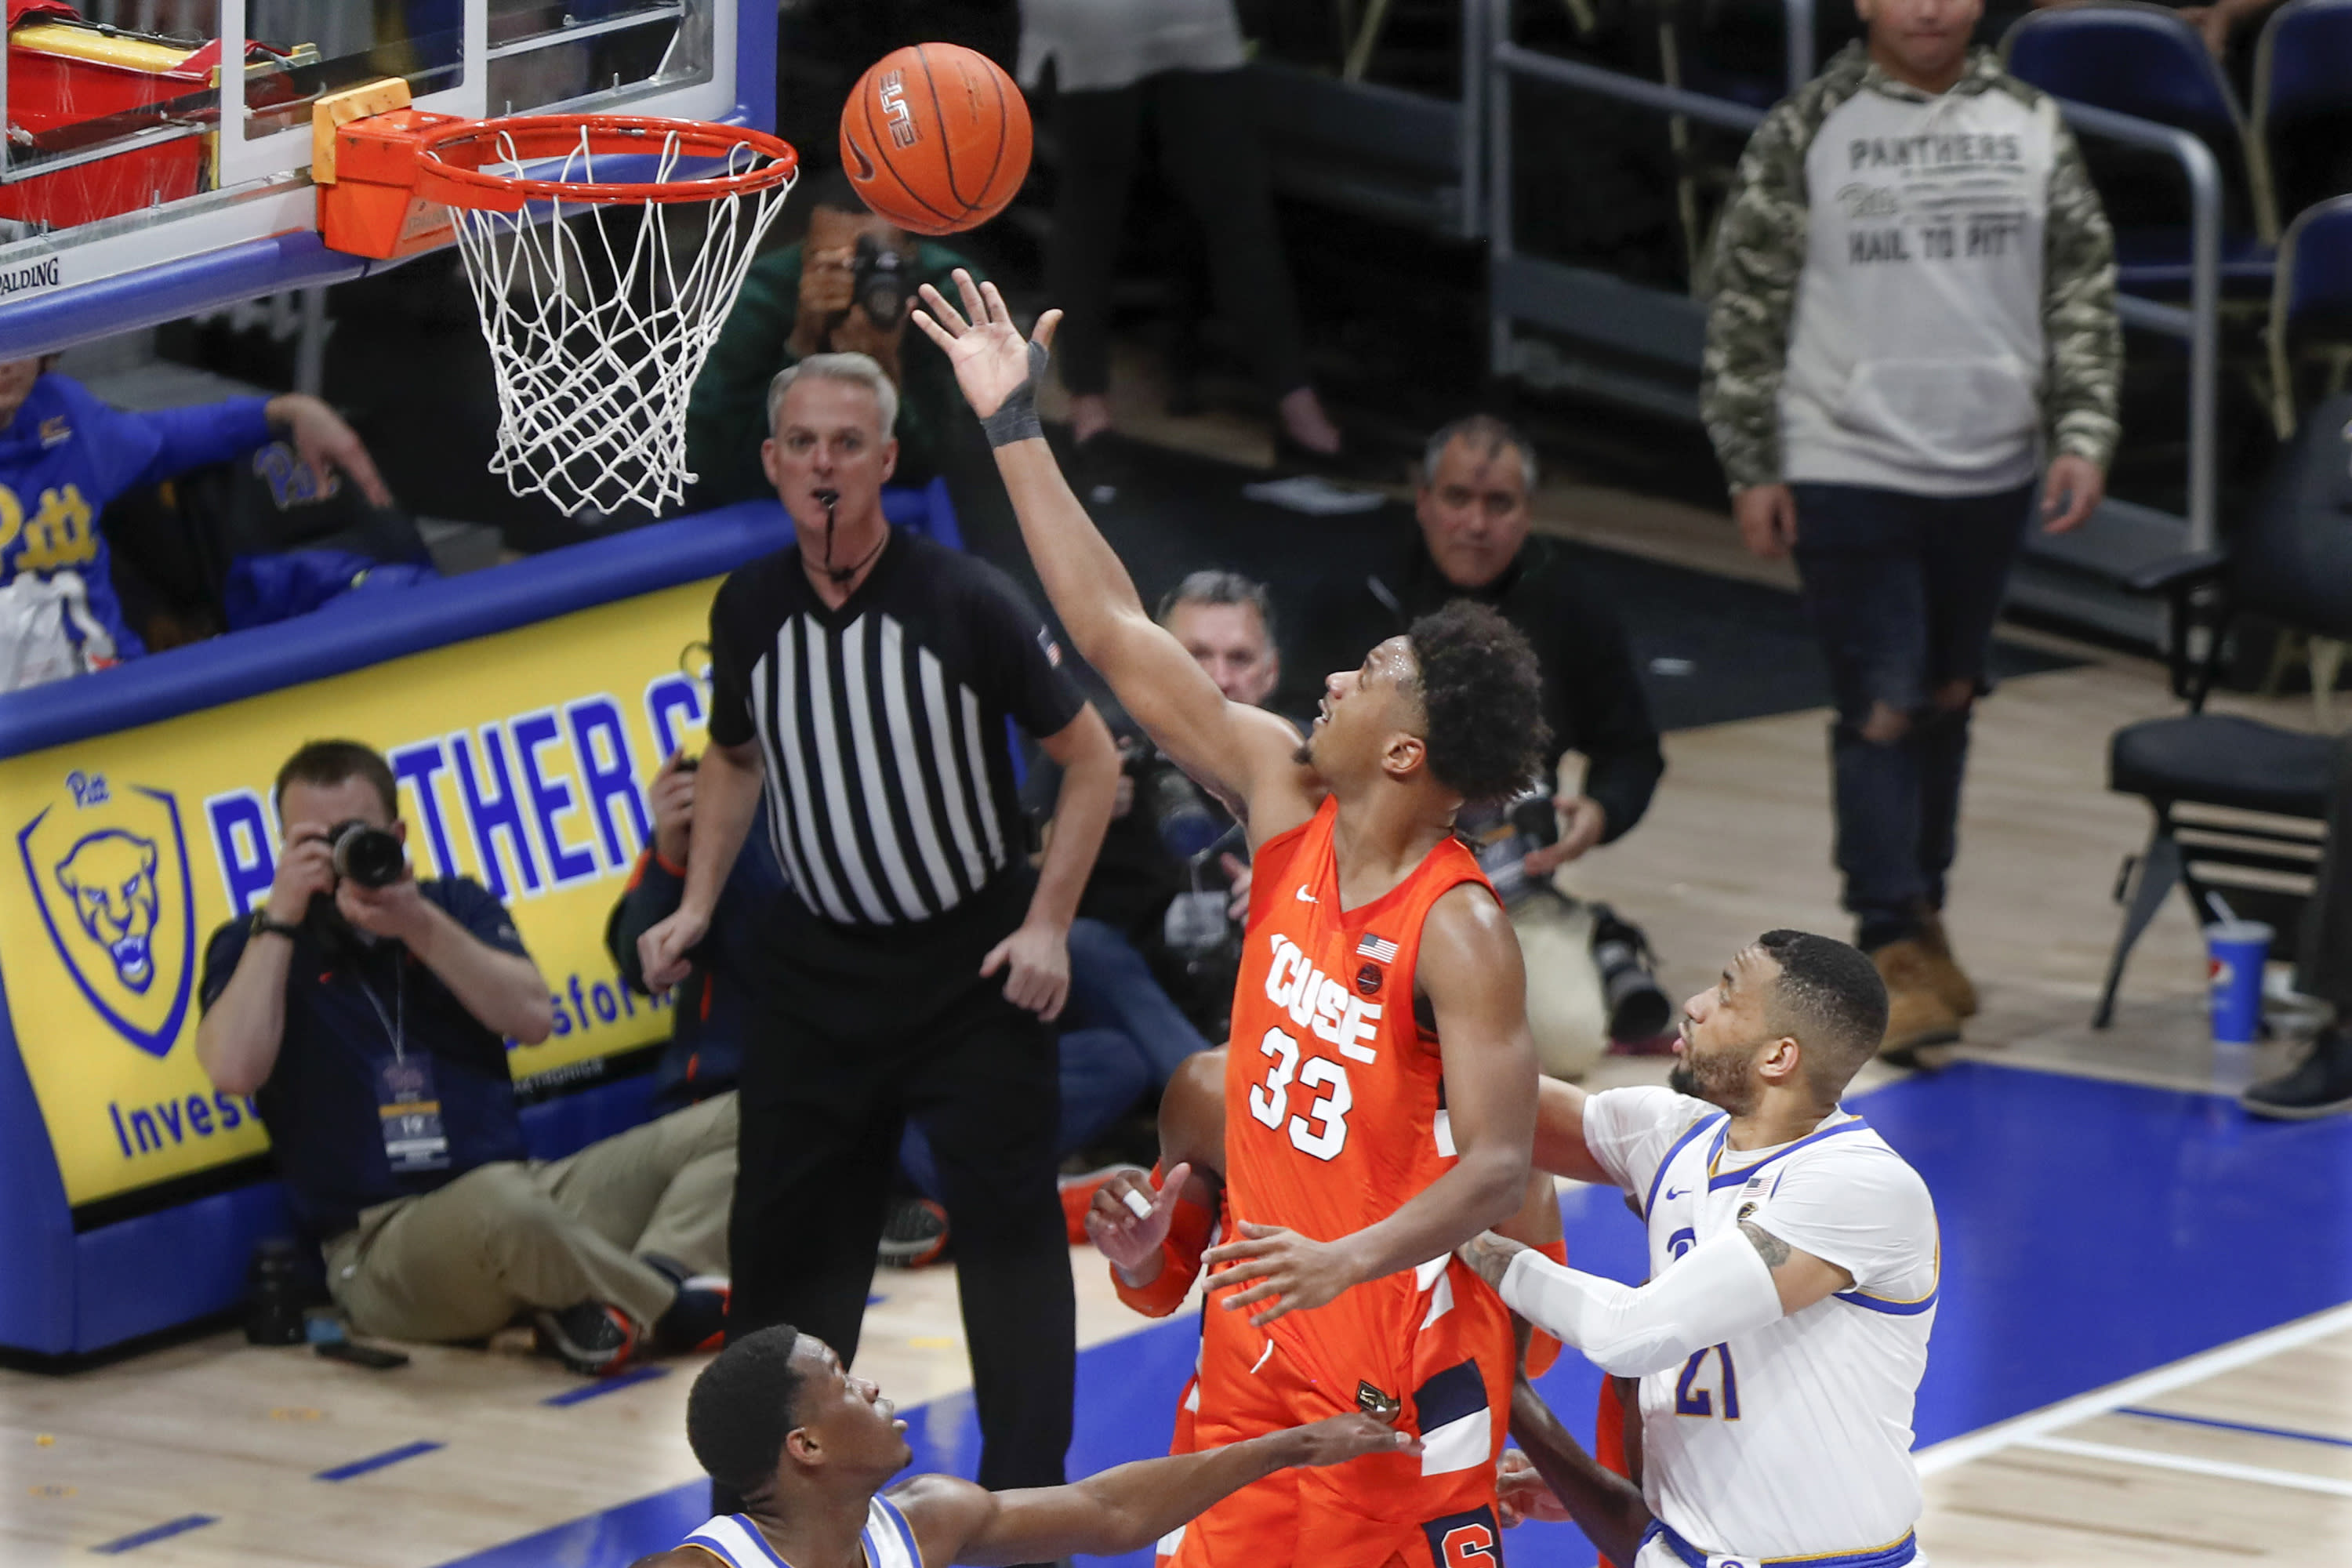 Syracuse's Elijah Hughes (33) scores after getting by Pittsburgh's Terrell Brown (21) during the second half of an NCAA college basketball game, Wednesday, Feb. 26, 2020, in Pittsburgh. (AP Photo/Keith Srakocic)